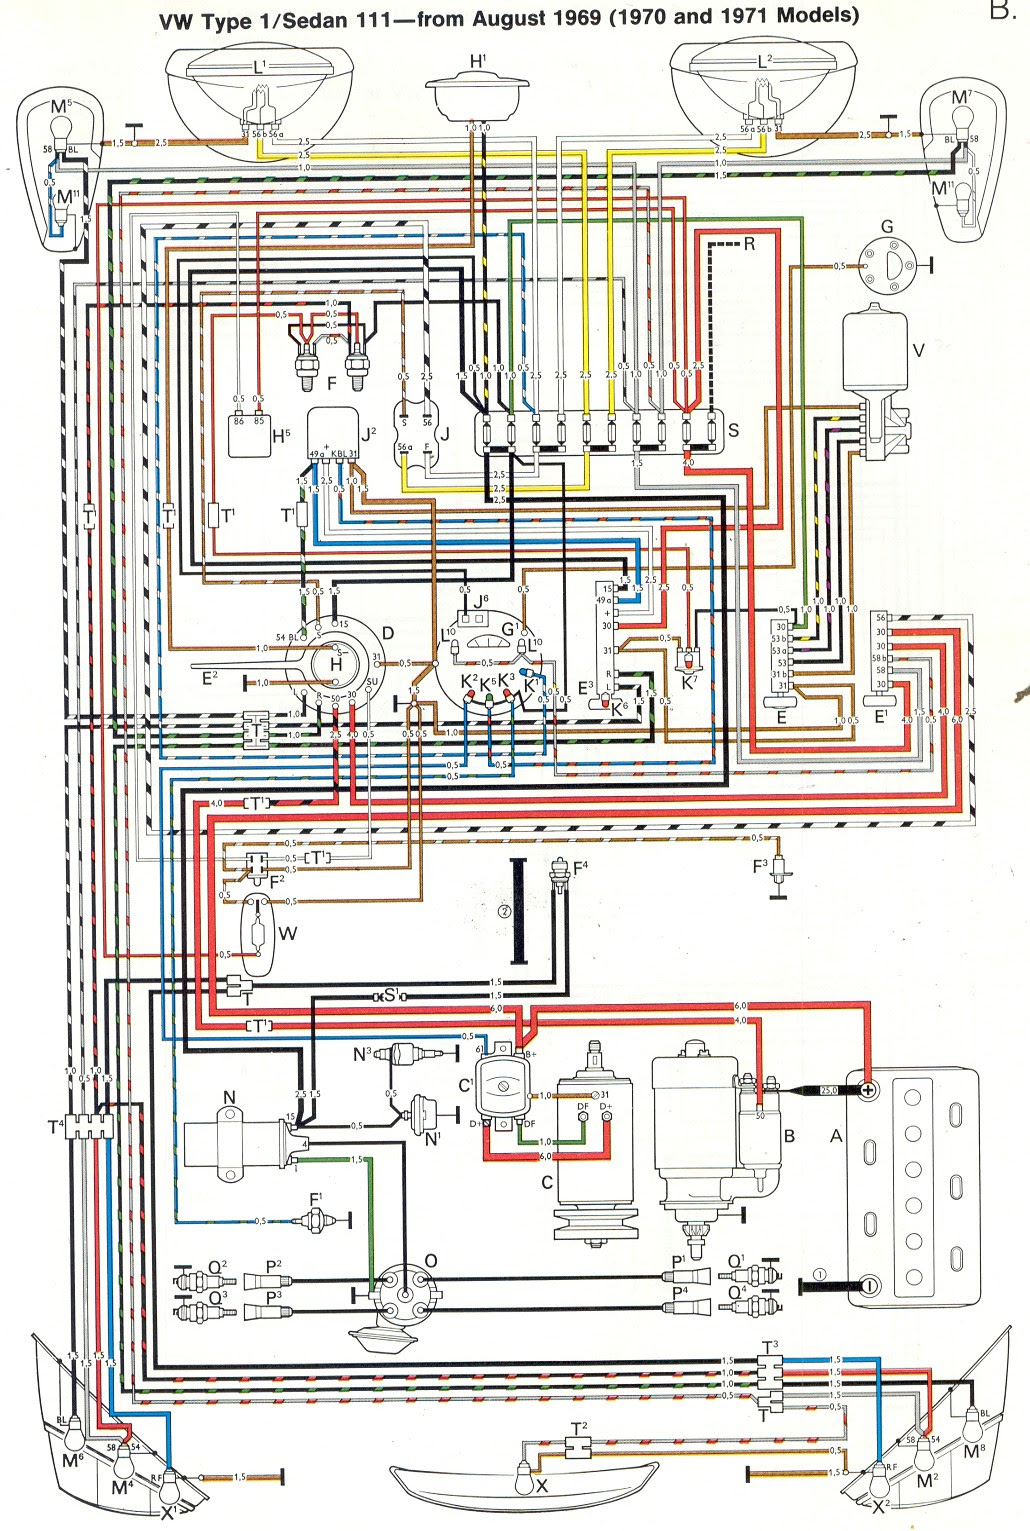 Diagram Wiring Diagram For 1969 Vw Beetle Full Version Hd Quality Vw Beetle Uwiringx18 Locandadossello It